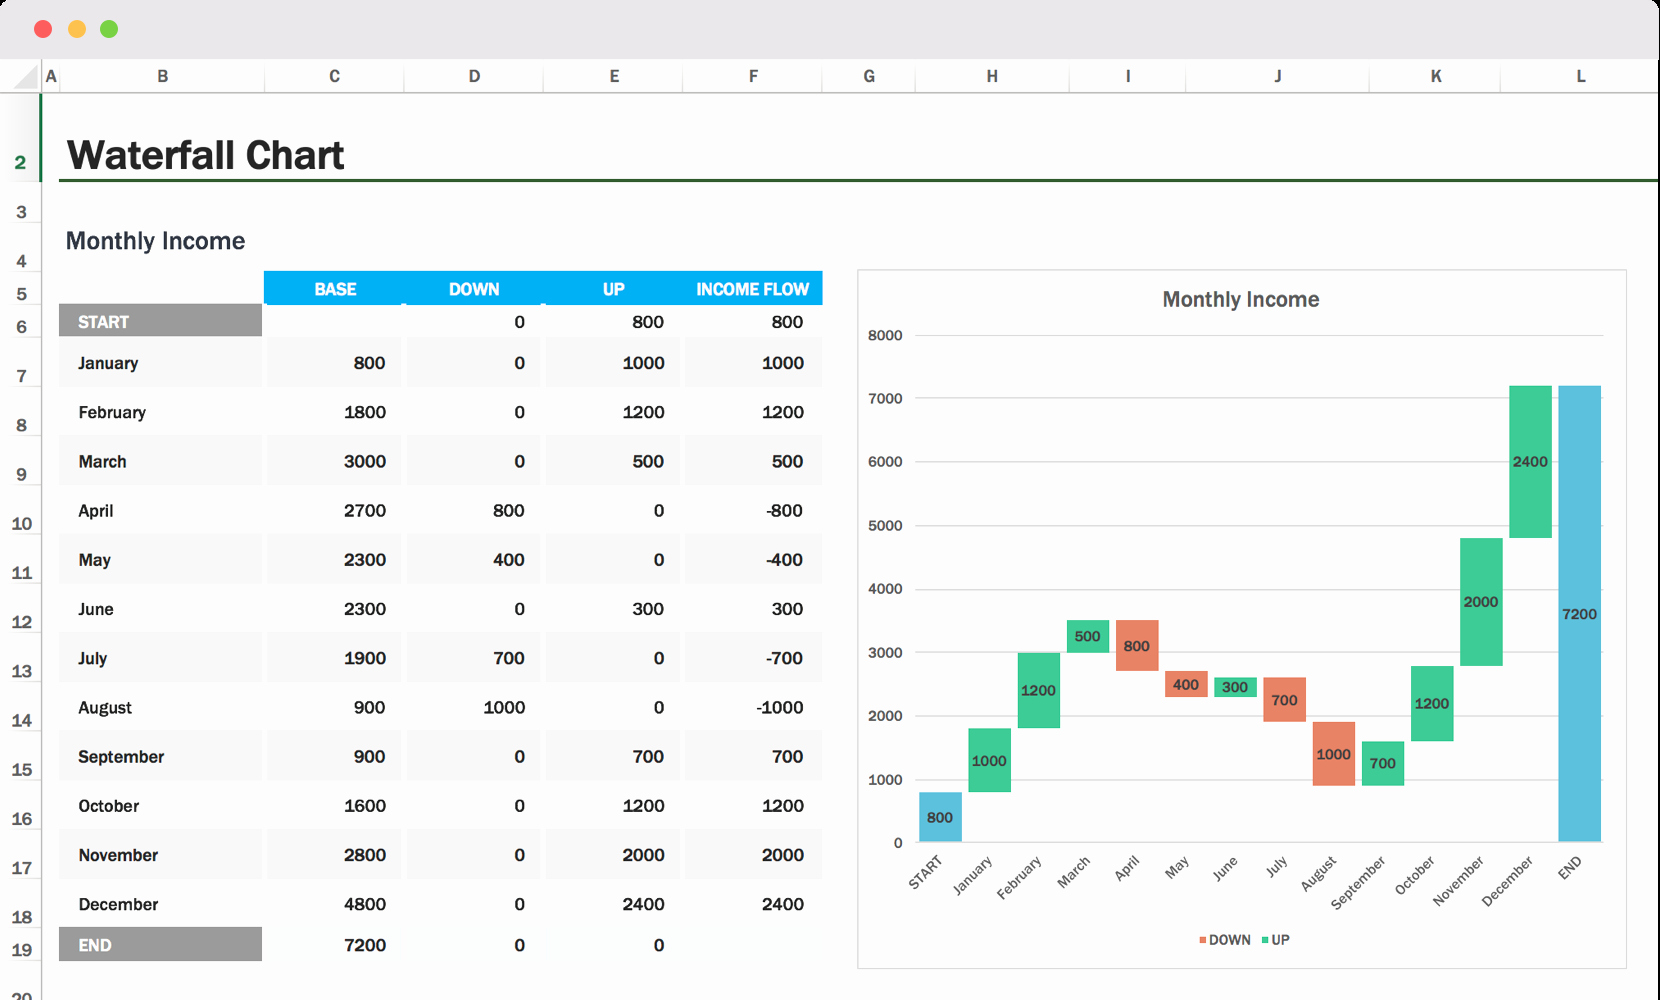 Waterfall Chart Excel Template Awesome Waterfall Chart Excel Template & How to Tips